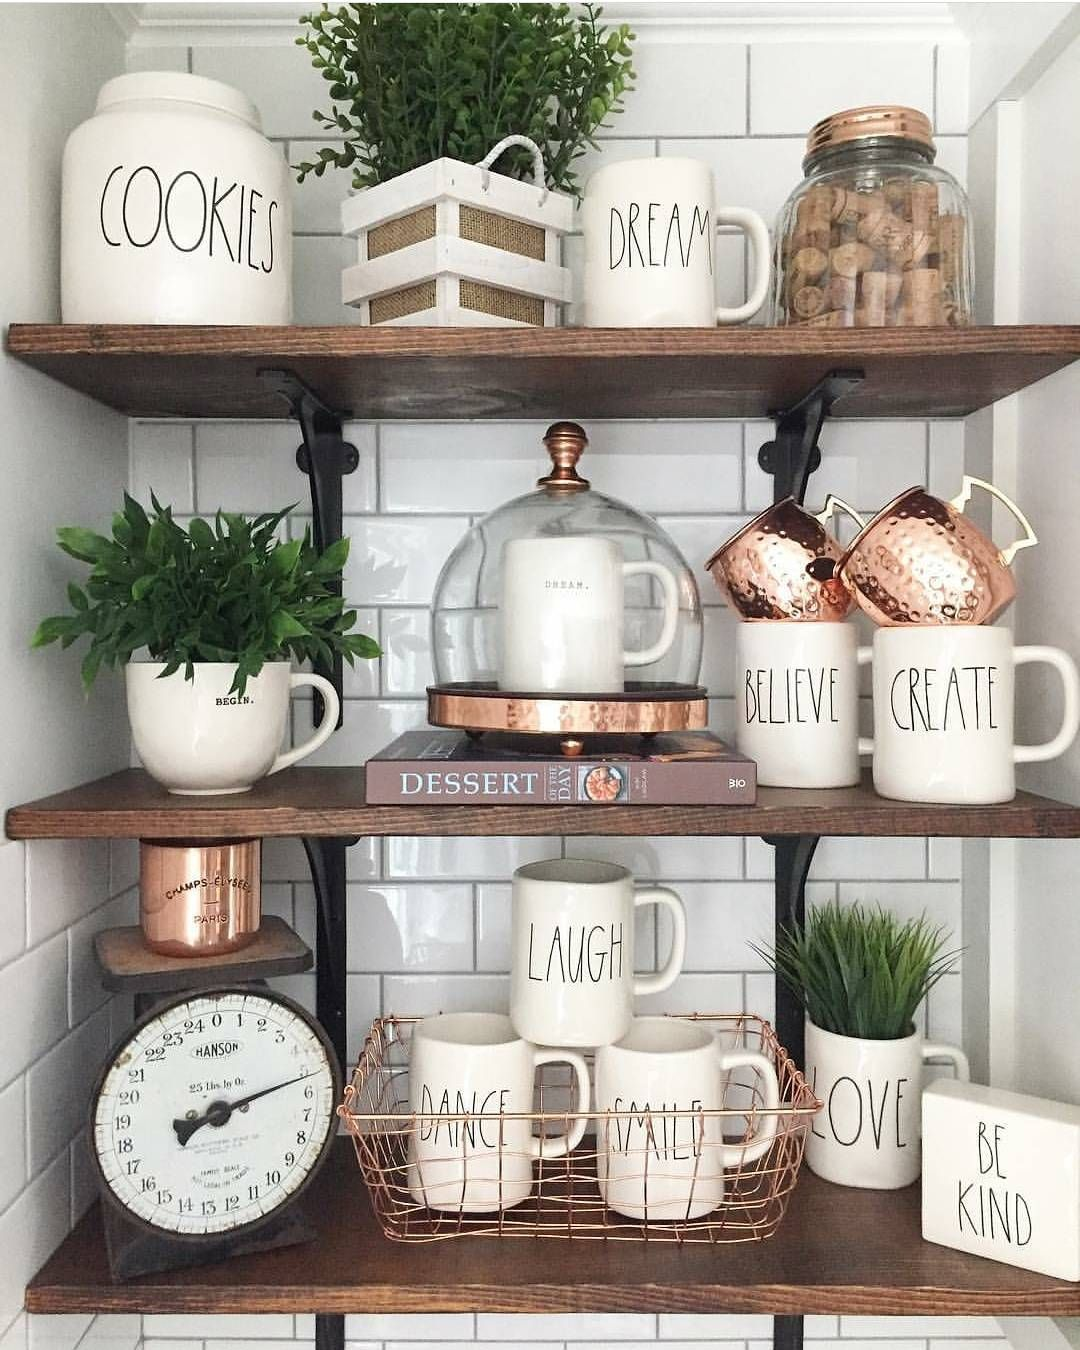 mixed copper collection, plants & eyecatching kitchen